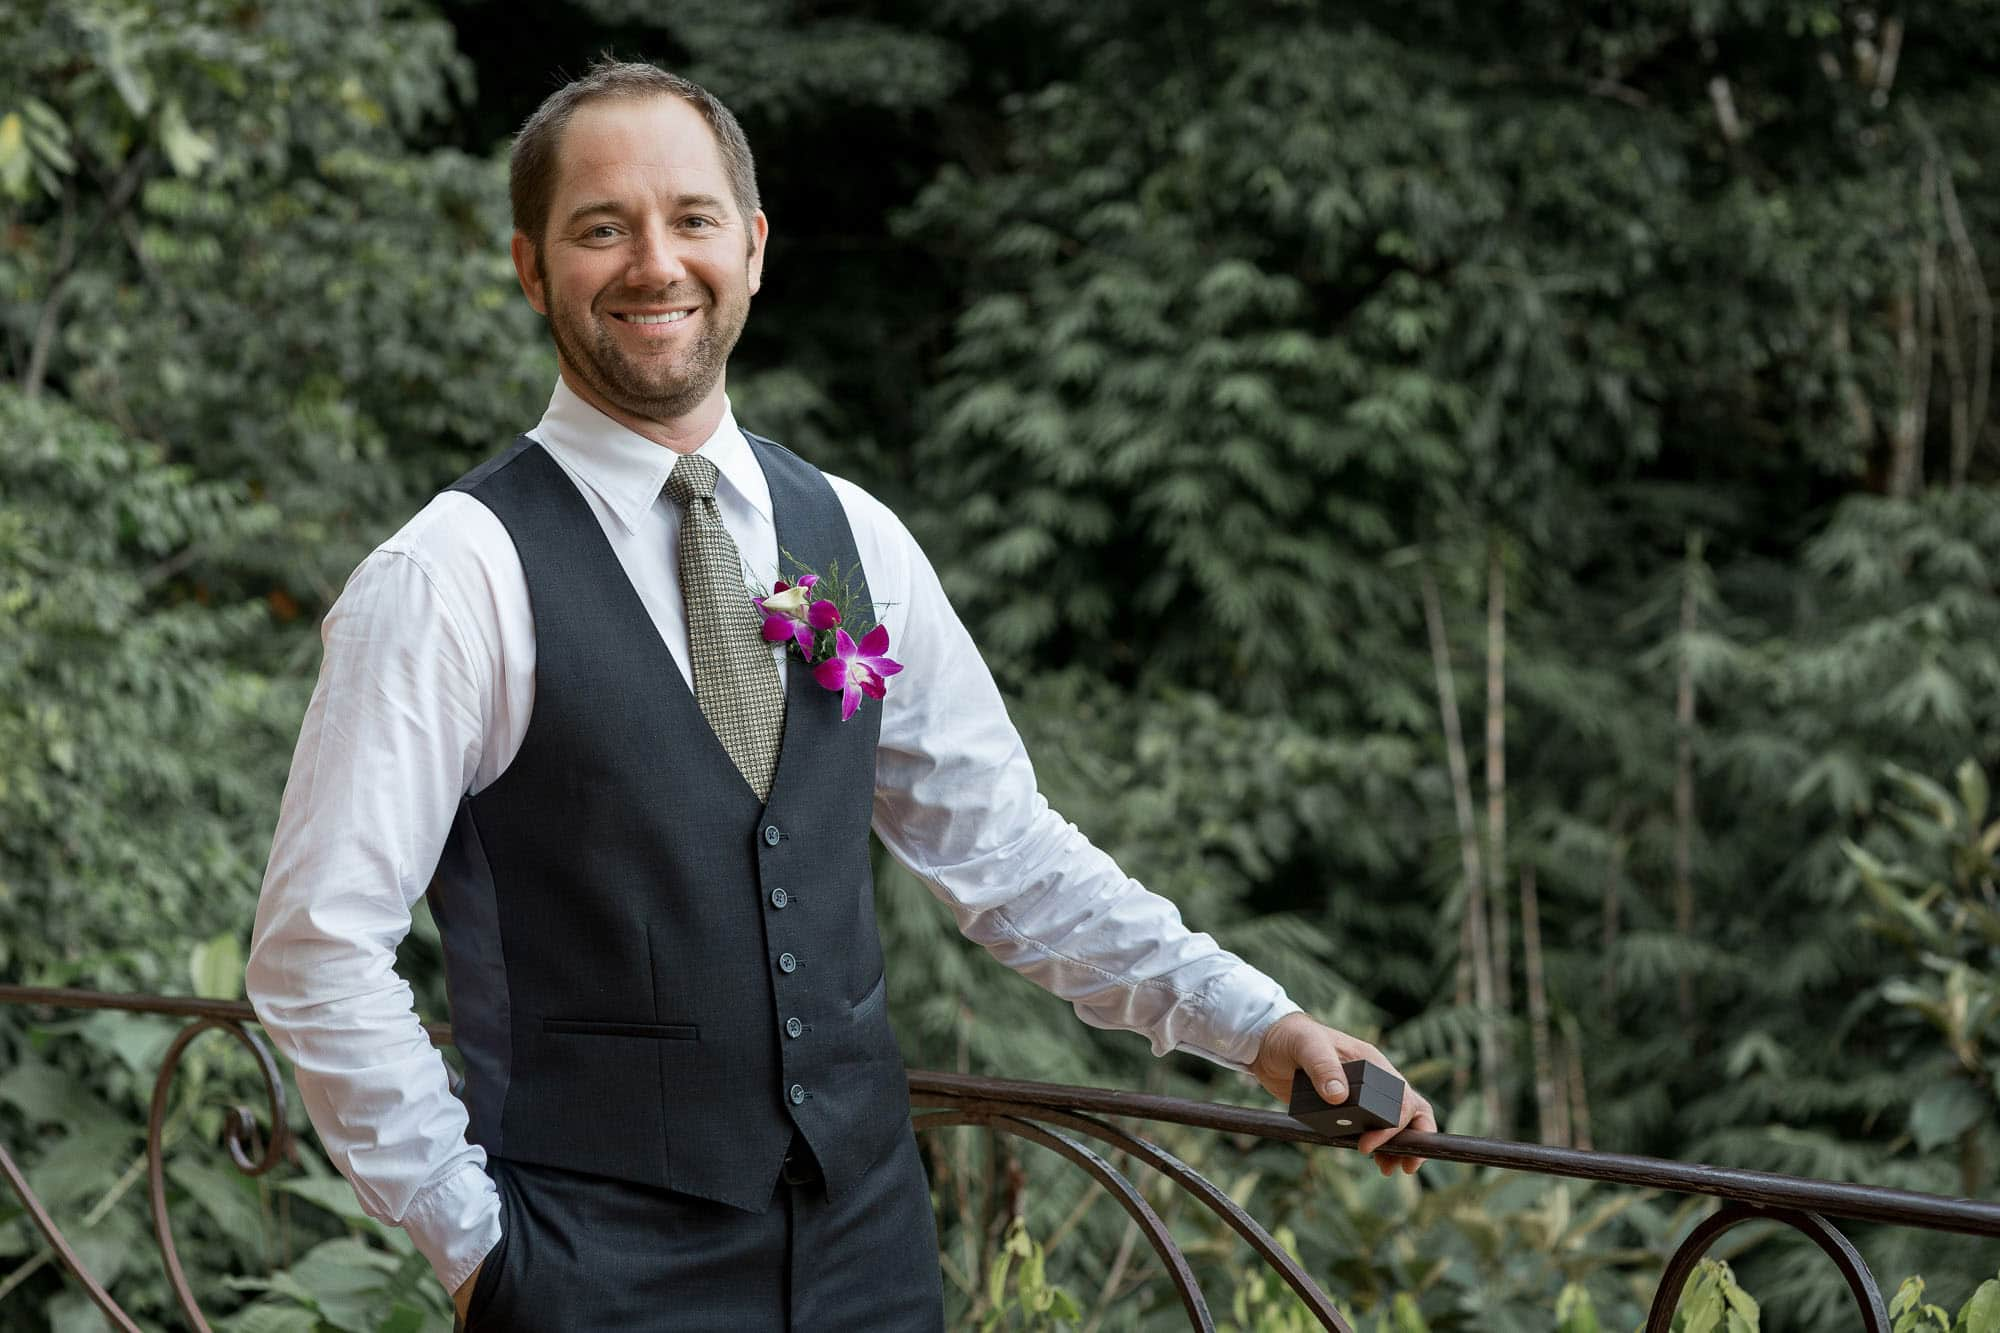 Rain on your wedding day isn't dampening this smile! The groom before the ceremony.